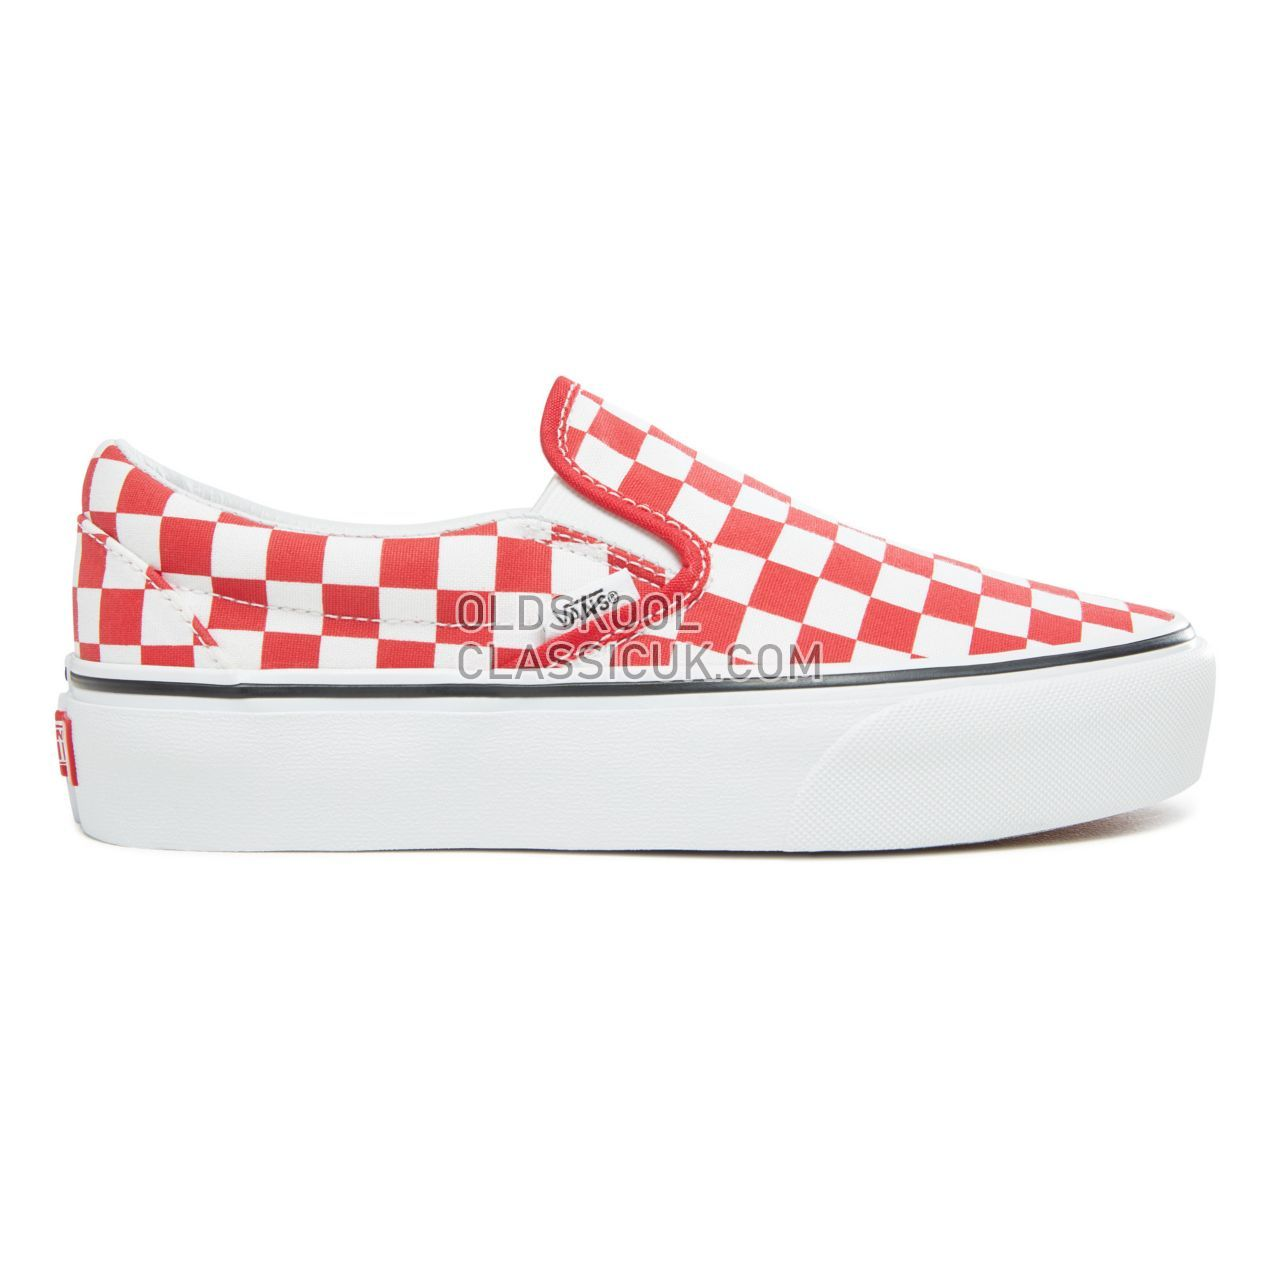 Vans Checkerboard Classic Slip-On Platform Sneakers Womens (Checkerboard) Racing Red/True White VA3JEZS4E Shoes